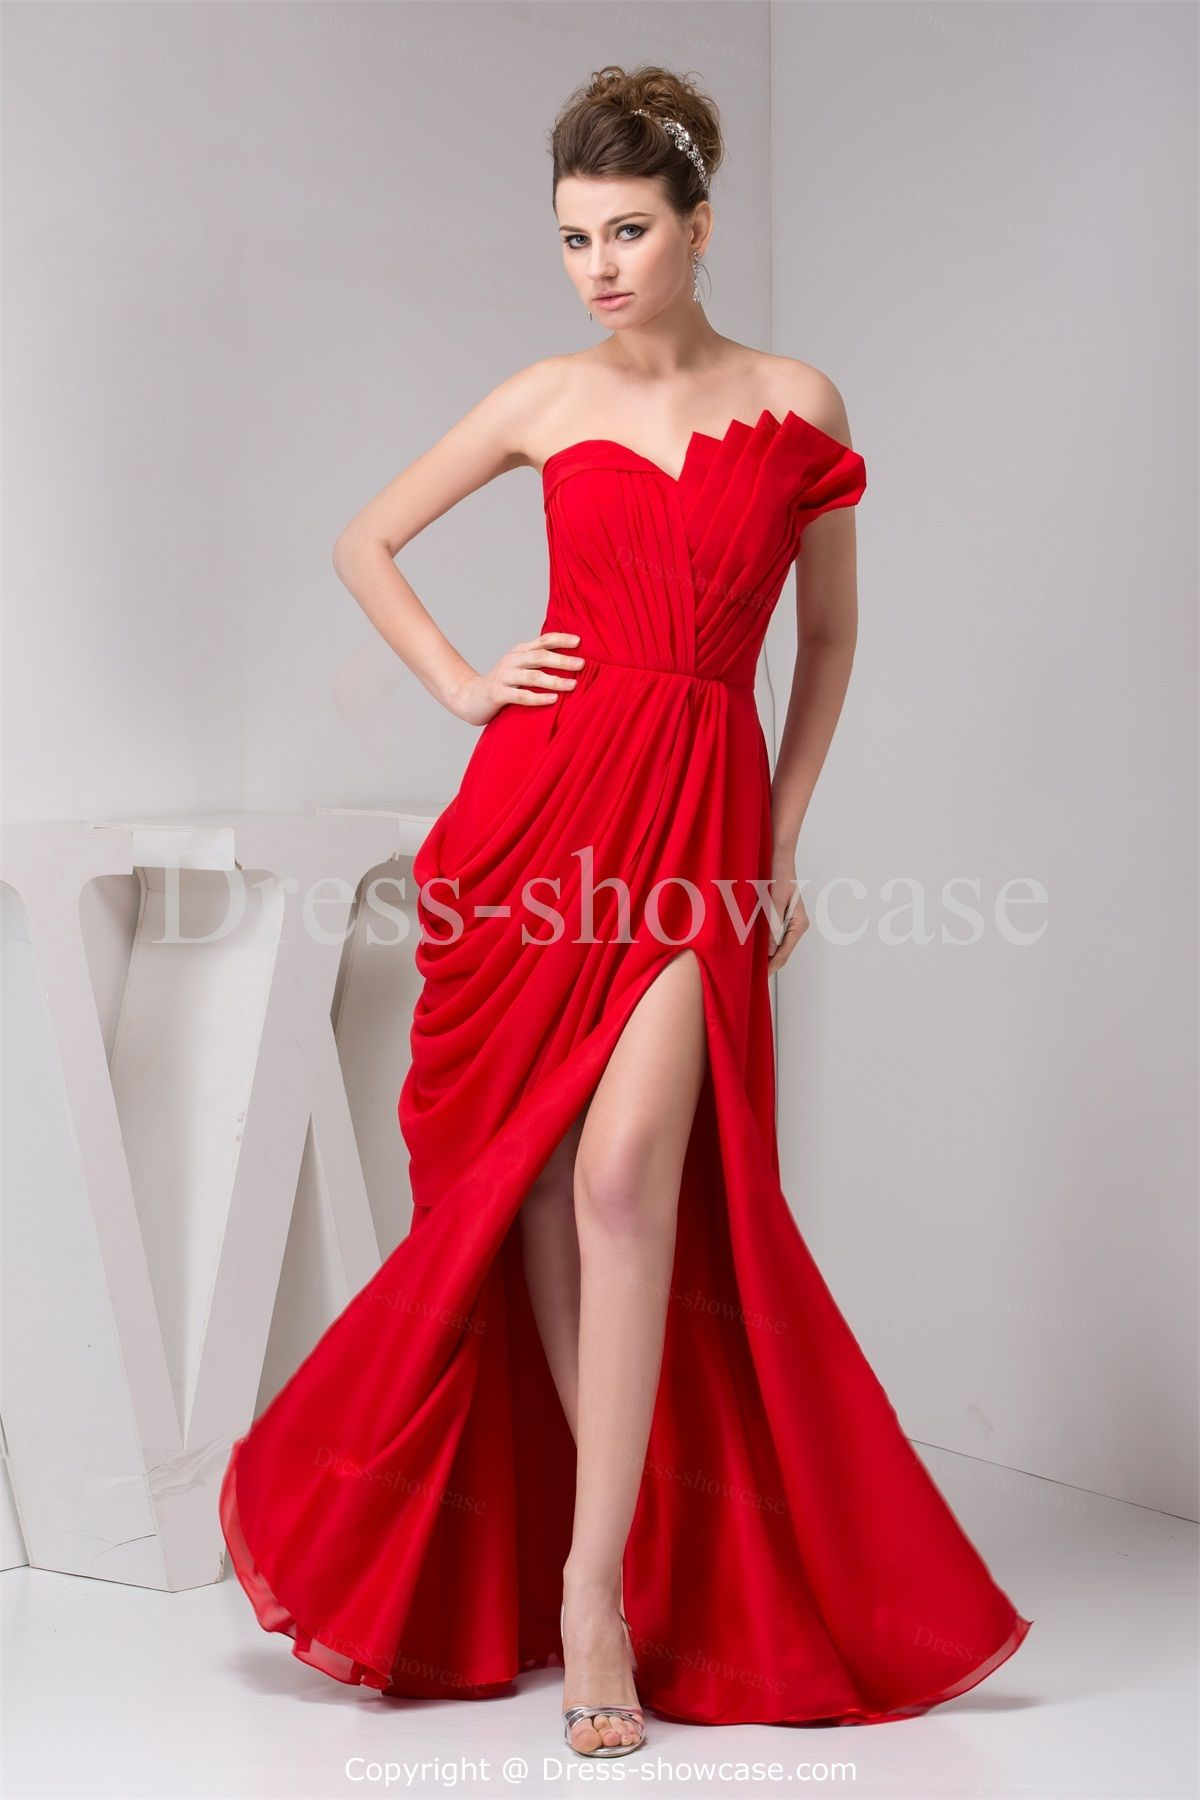 formal dresses for weddings prom dress prom dresses prom dress prom dresses a line chiffon scalloped natural waist floor length zipper sleeveless ruching split red prom dress